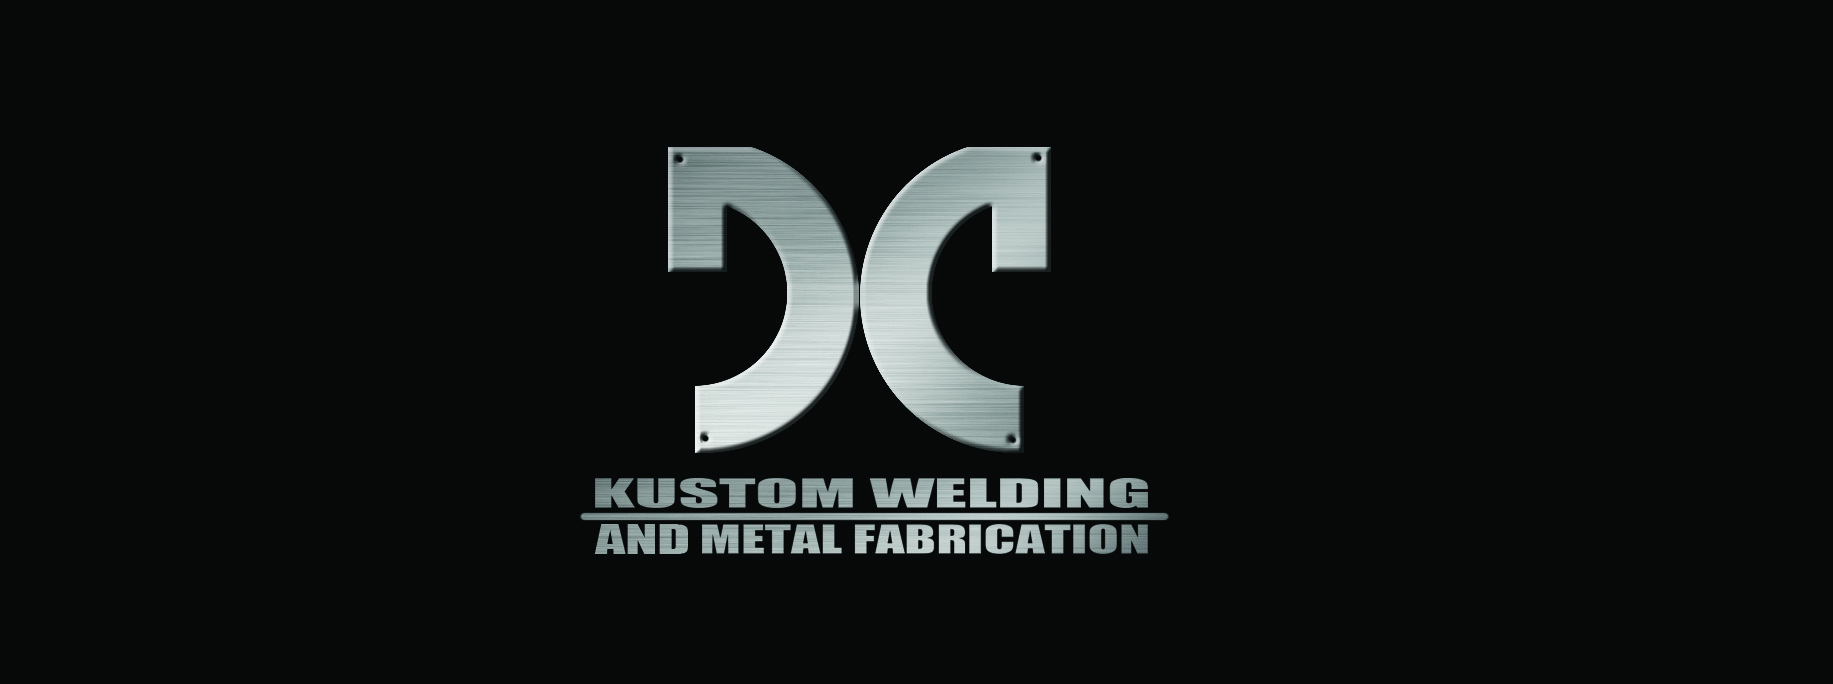 Logo Design by Arqui ACOSTA - Entry No. 5 in the Logo Design Contest Imaginative Logo Design for DC KUSTOM WELDING & METAL FABRICATION.